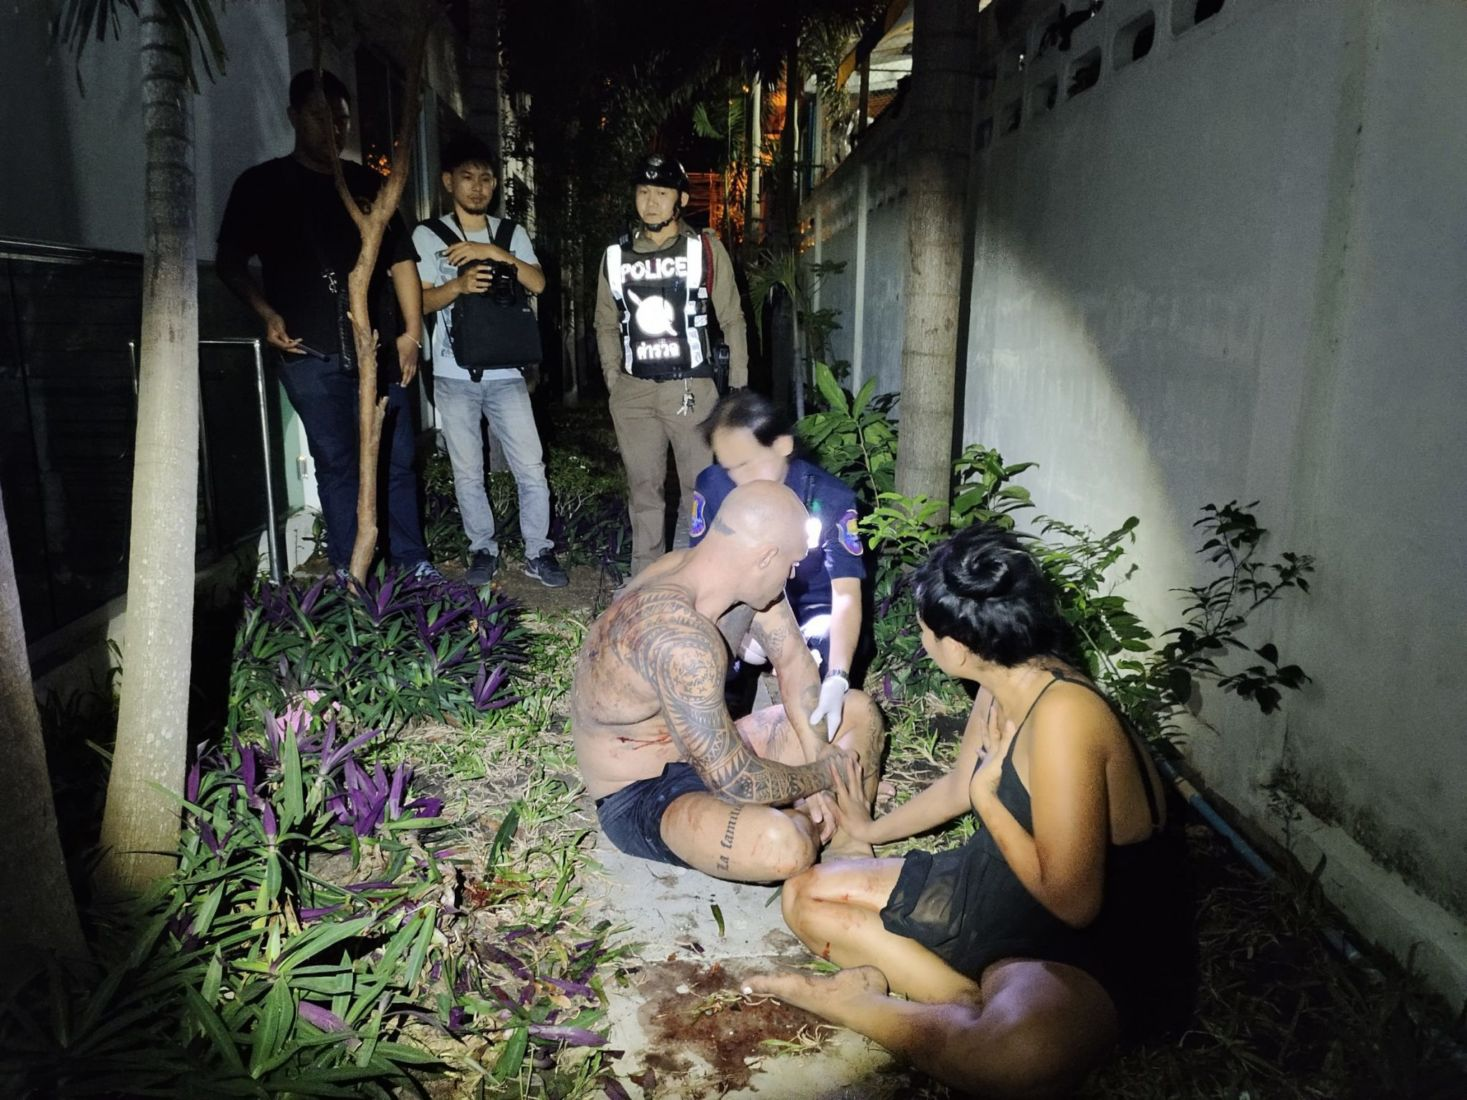 German man dead after jumping from Pattaya condo, refusing medical assistance | Thaiger